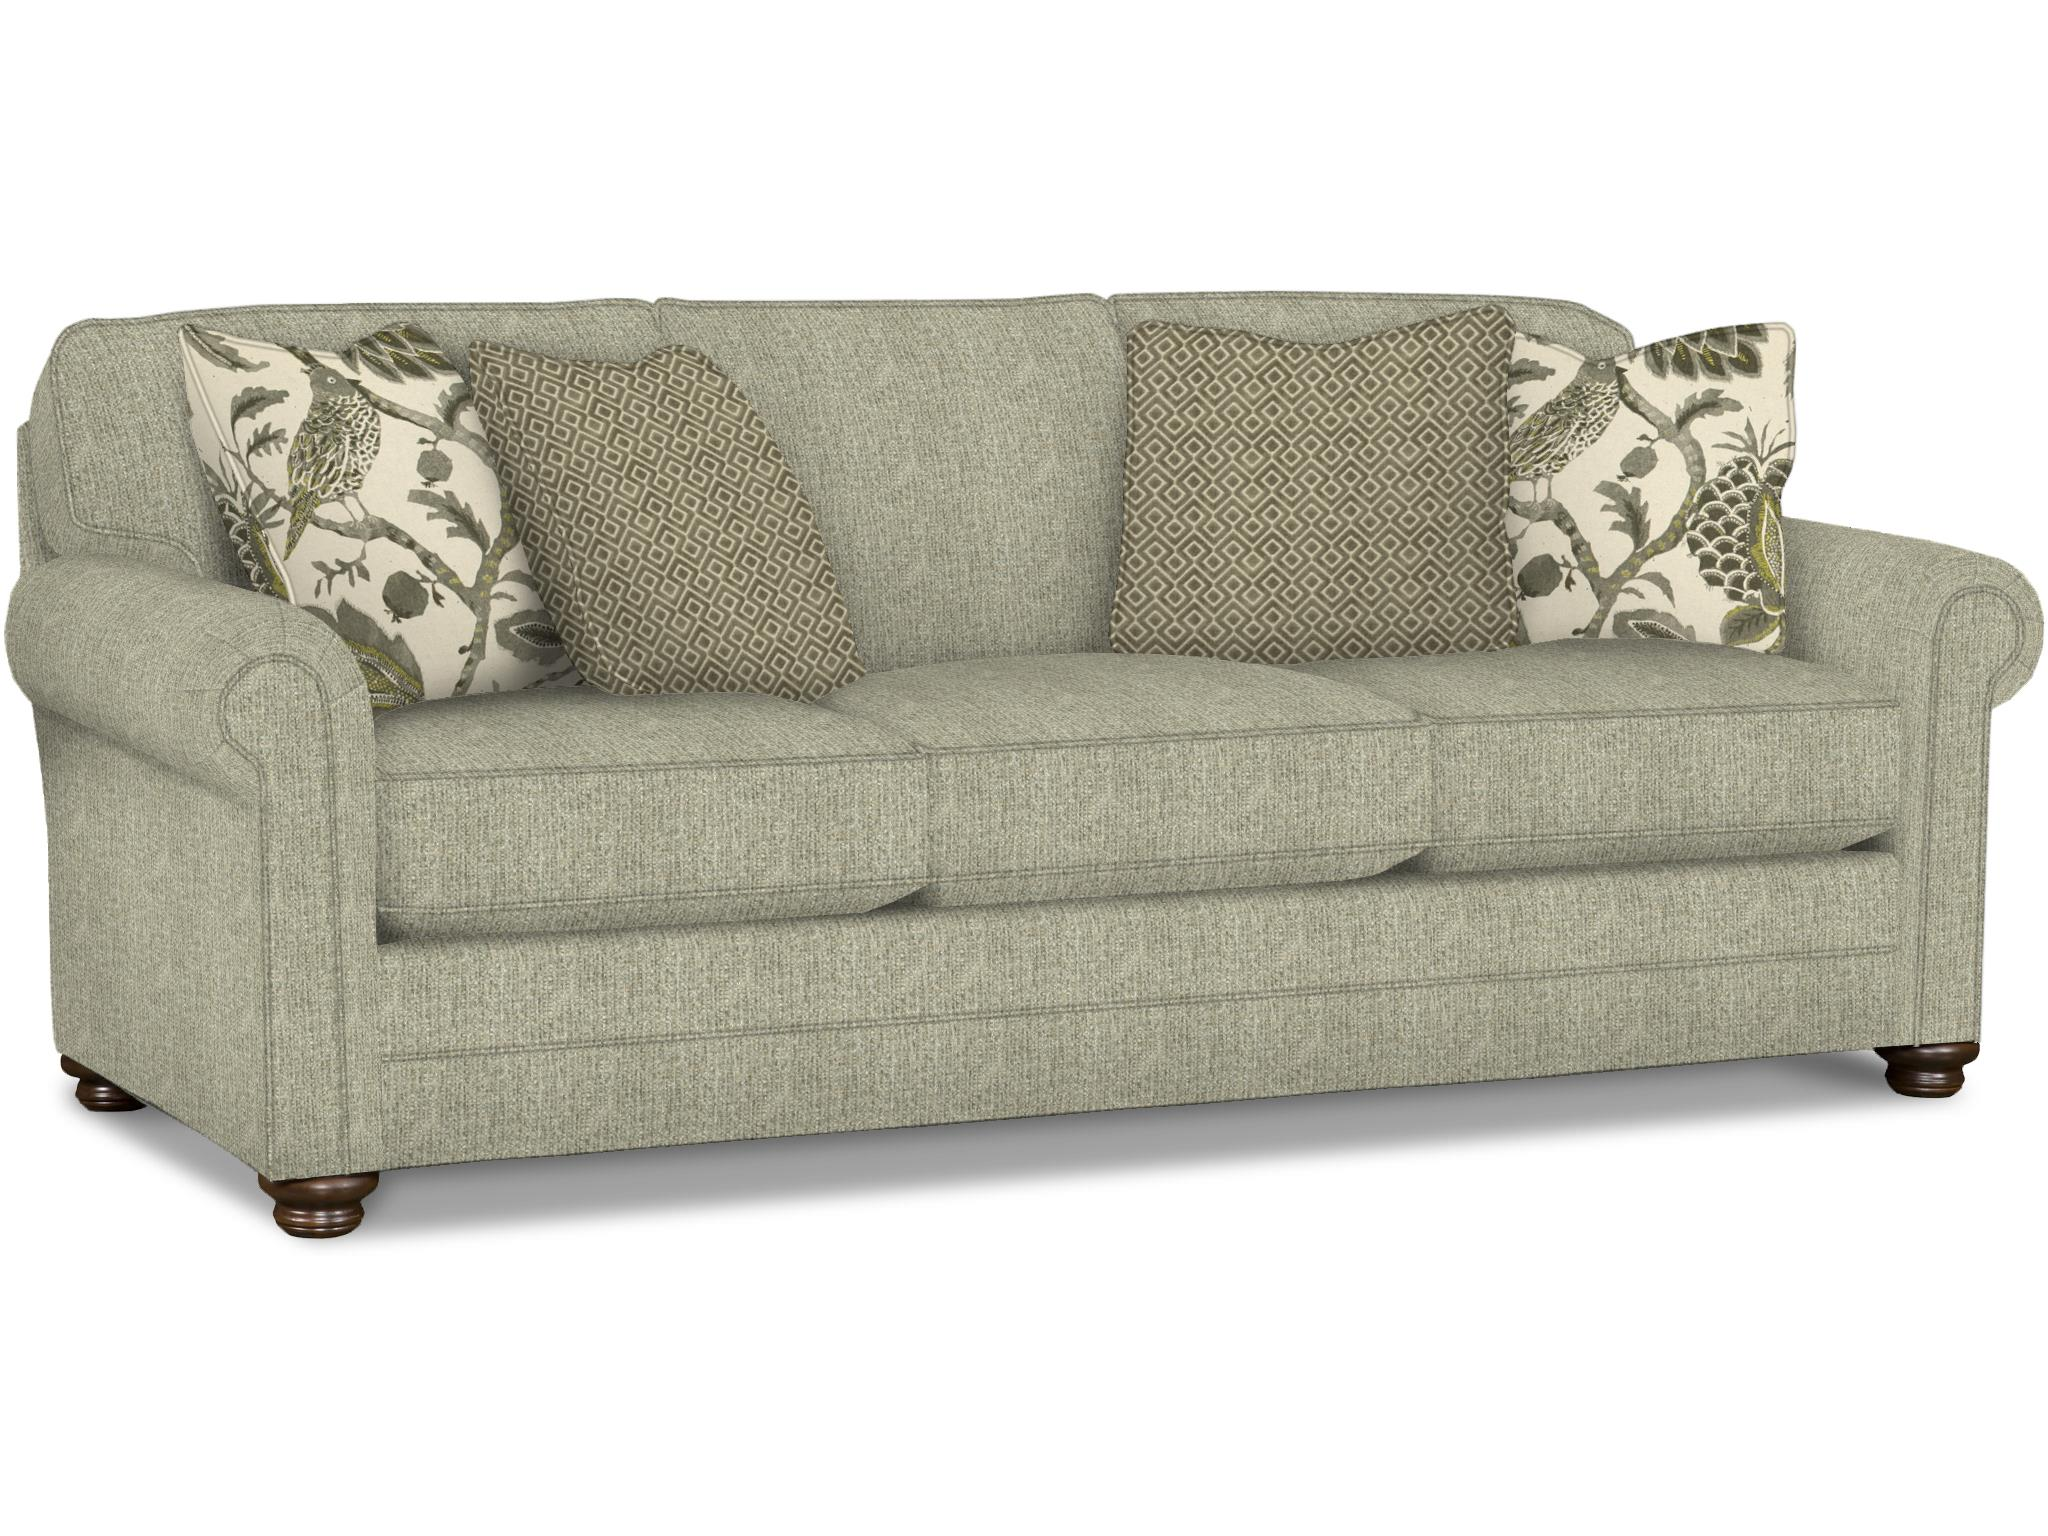 Doerr Furniture Winston Sofa Sofas Sectionals Living